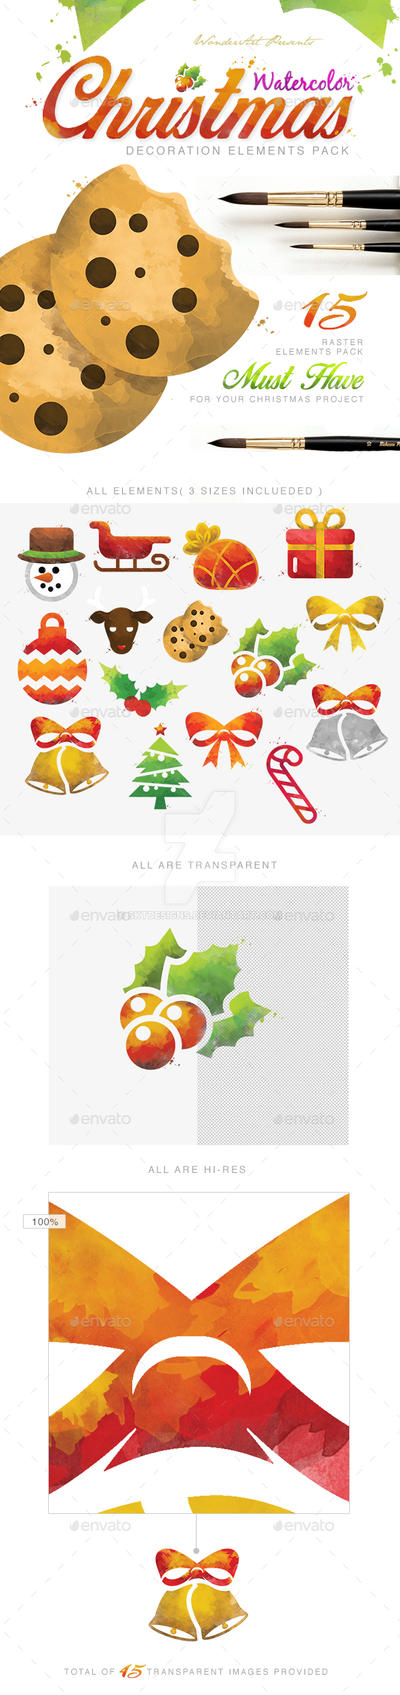 Watercolor Christmas Decoretive Elements Pack by sktdesigns